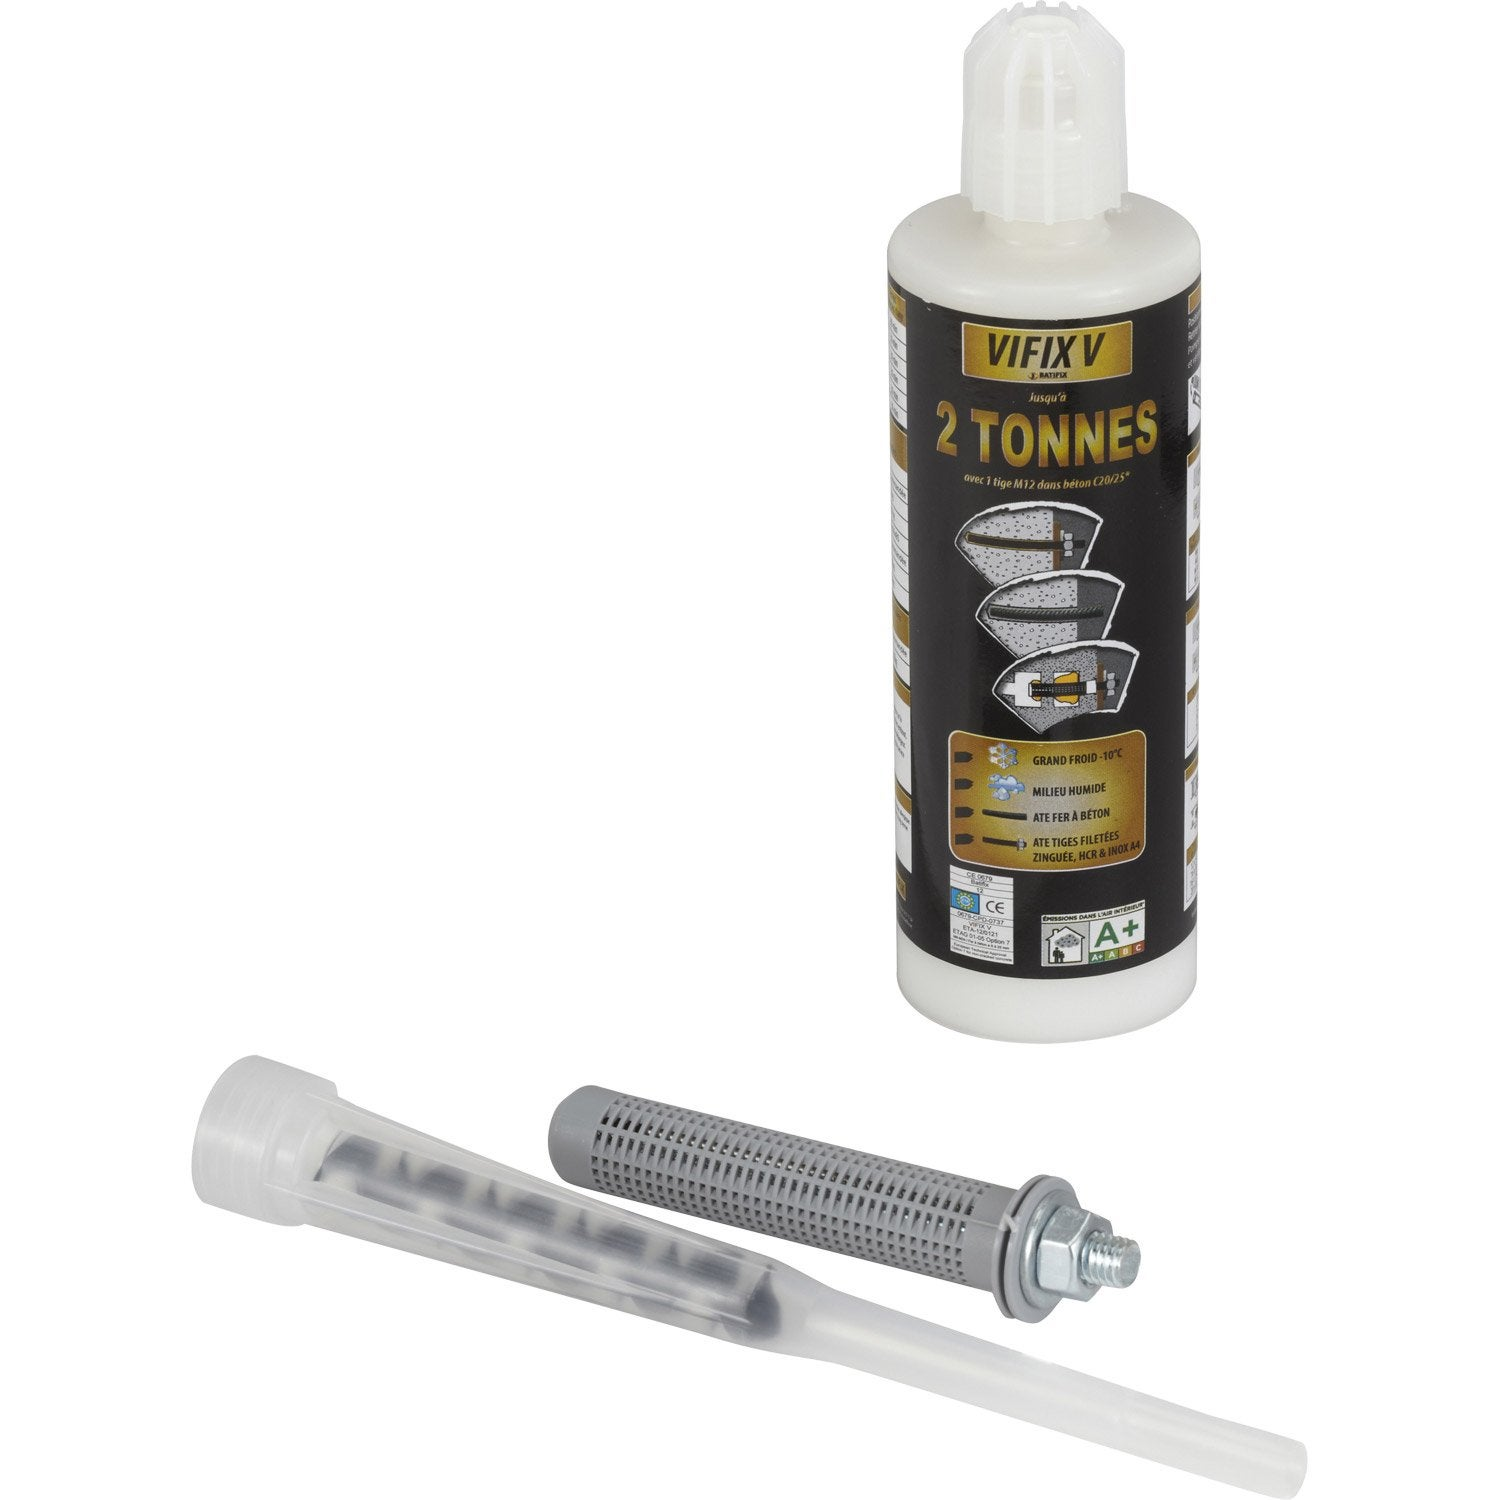 Kit de scellement chimique vifix v batifix leroy merlin - Kit oscilobatiente leroy merlin ...